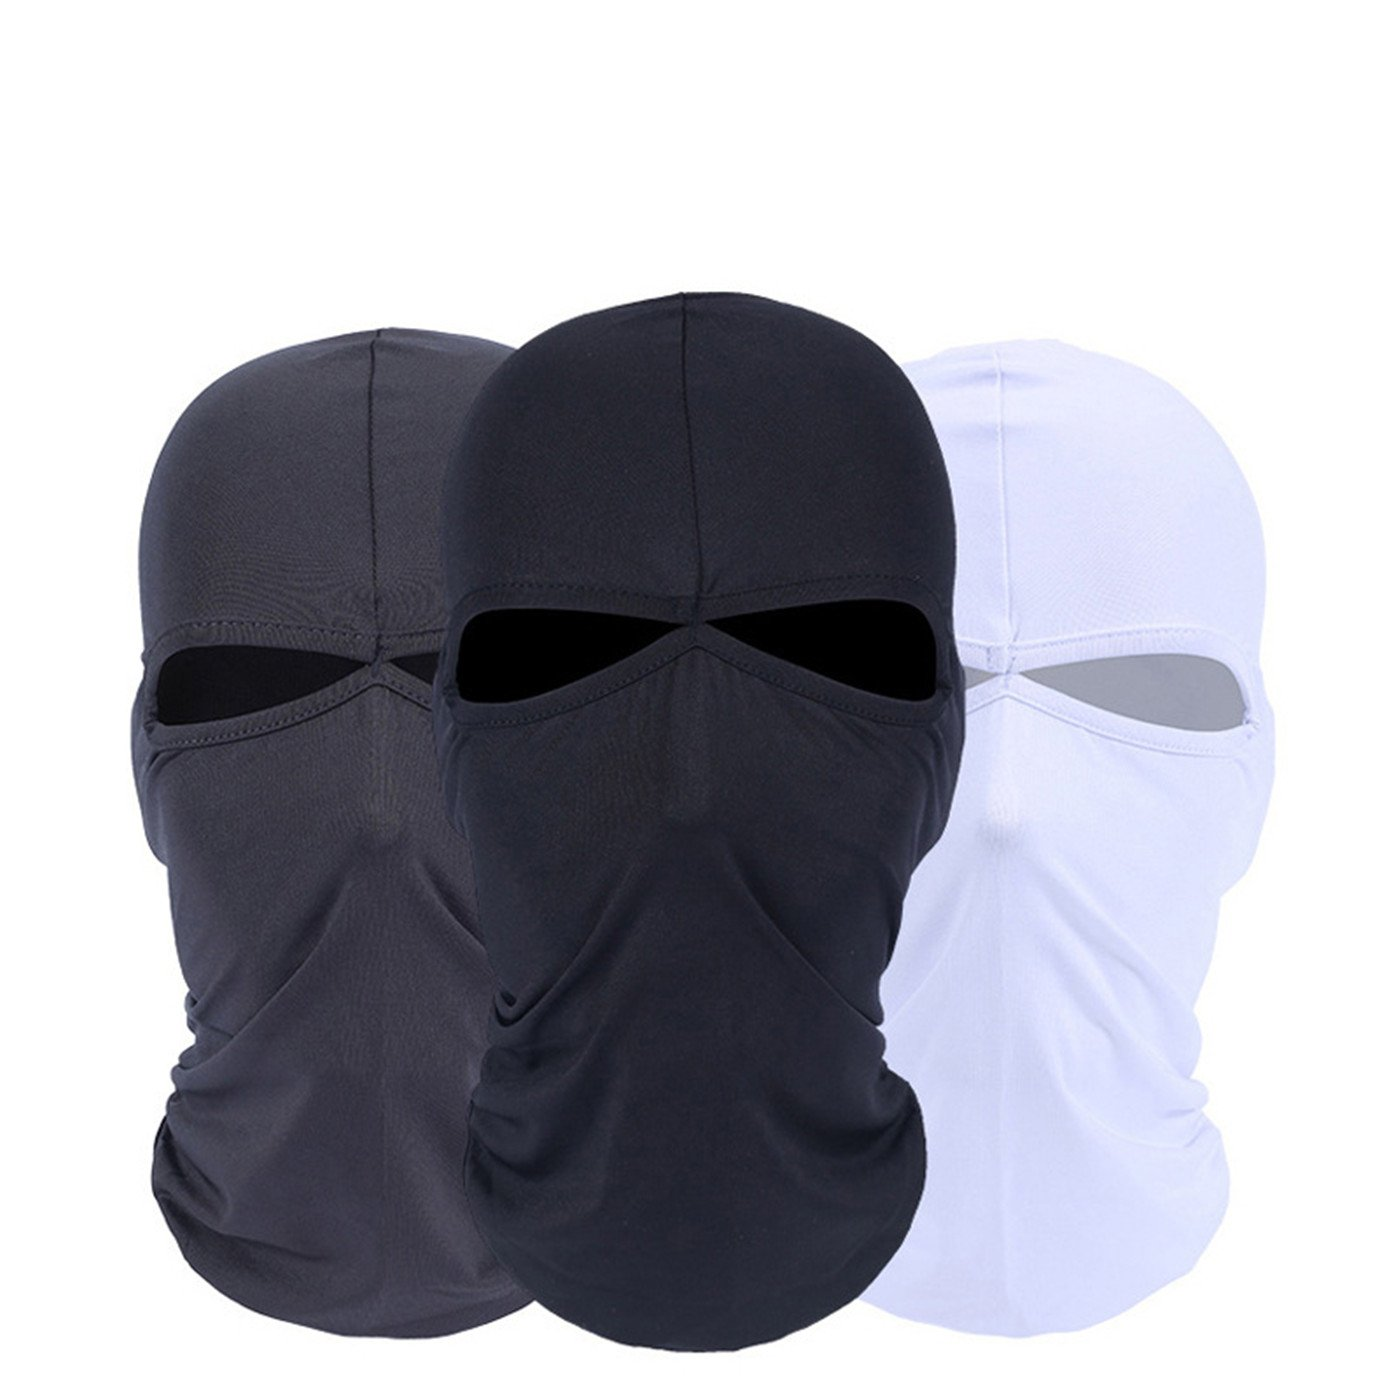 Balaclava - Windproof Mask Adjustable Face Head Warmer for Skiing, Cycling, Motorcycle Outdoor Sports 3Pack 2